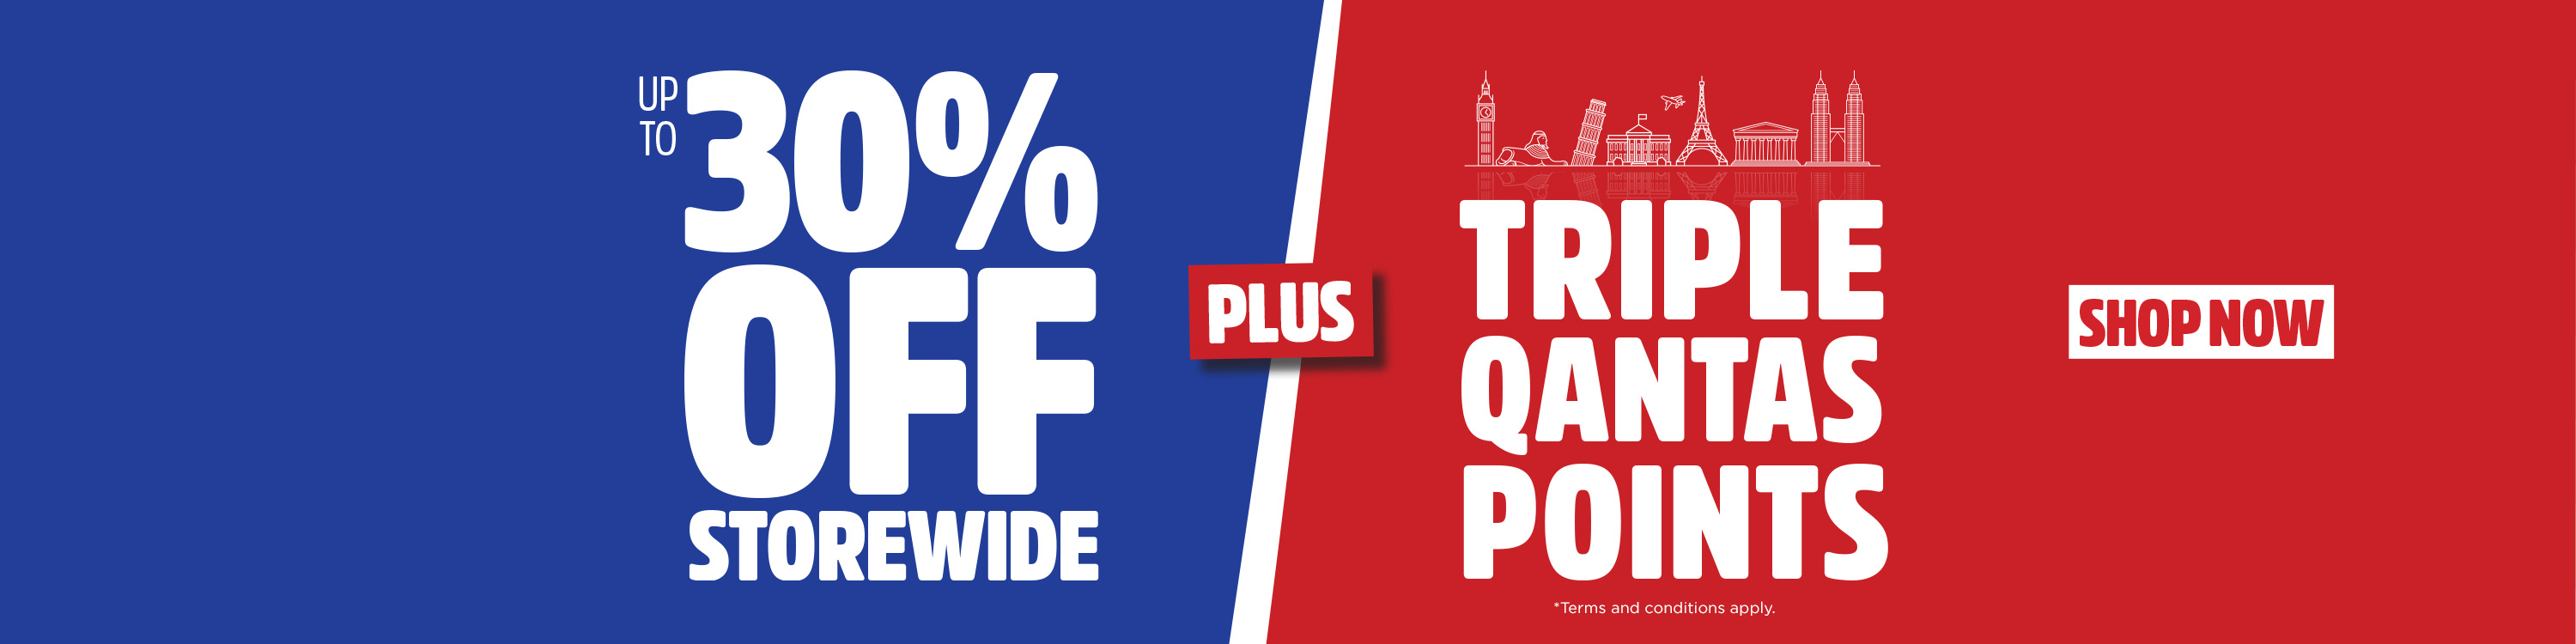 Up to 30% off storewide + earn TRIPLE Qantas Points